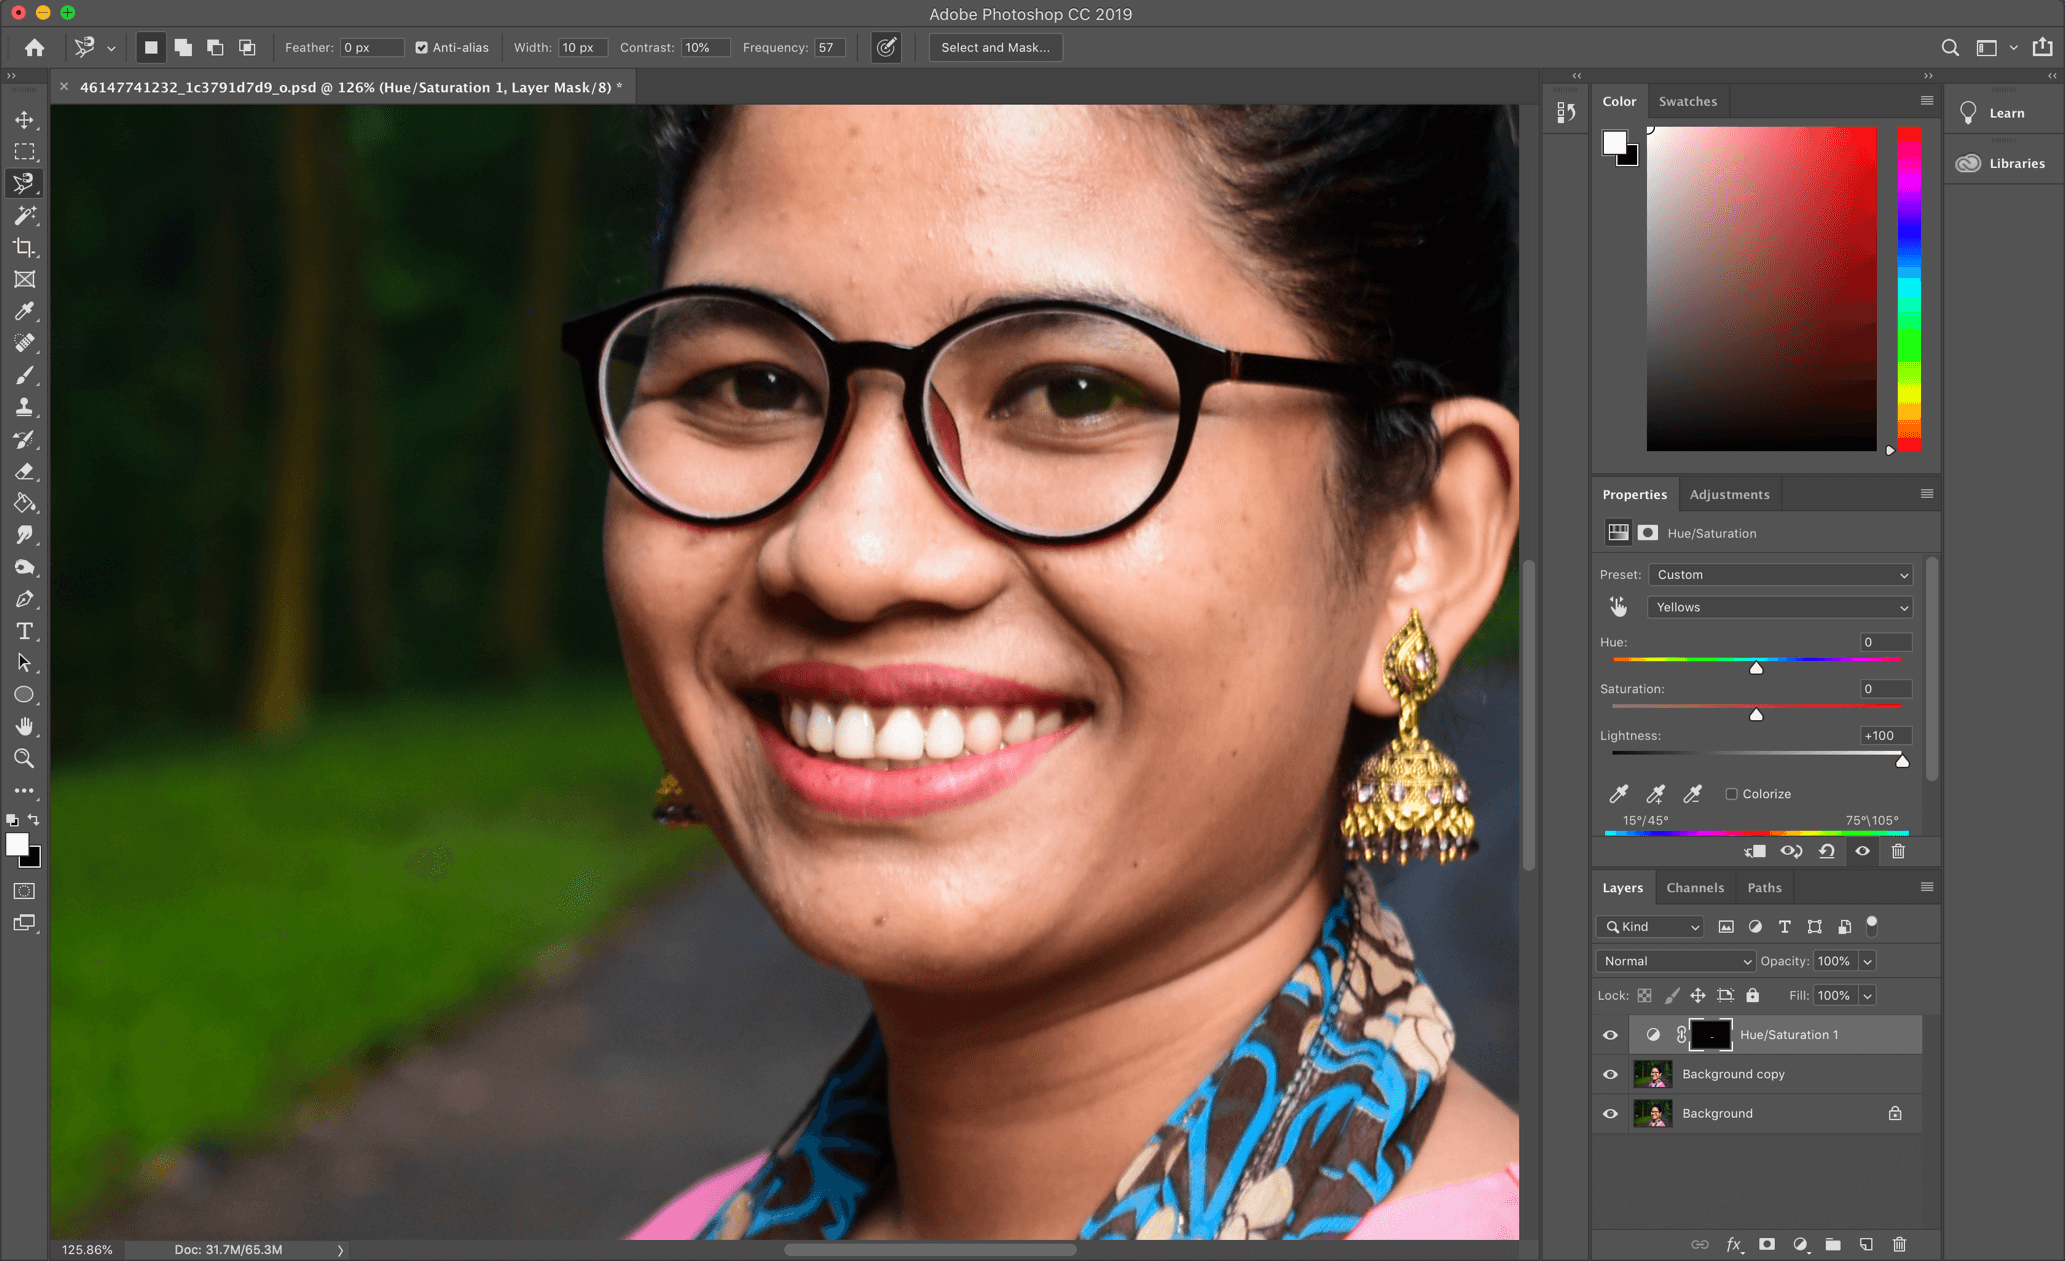 Smiling asian girl in Adobe Photoshop Software